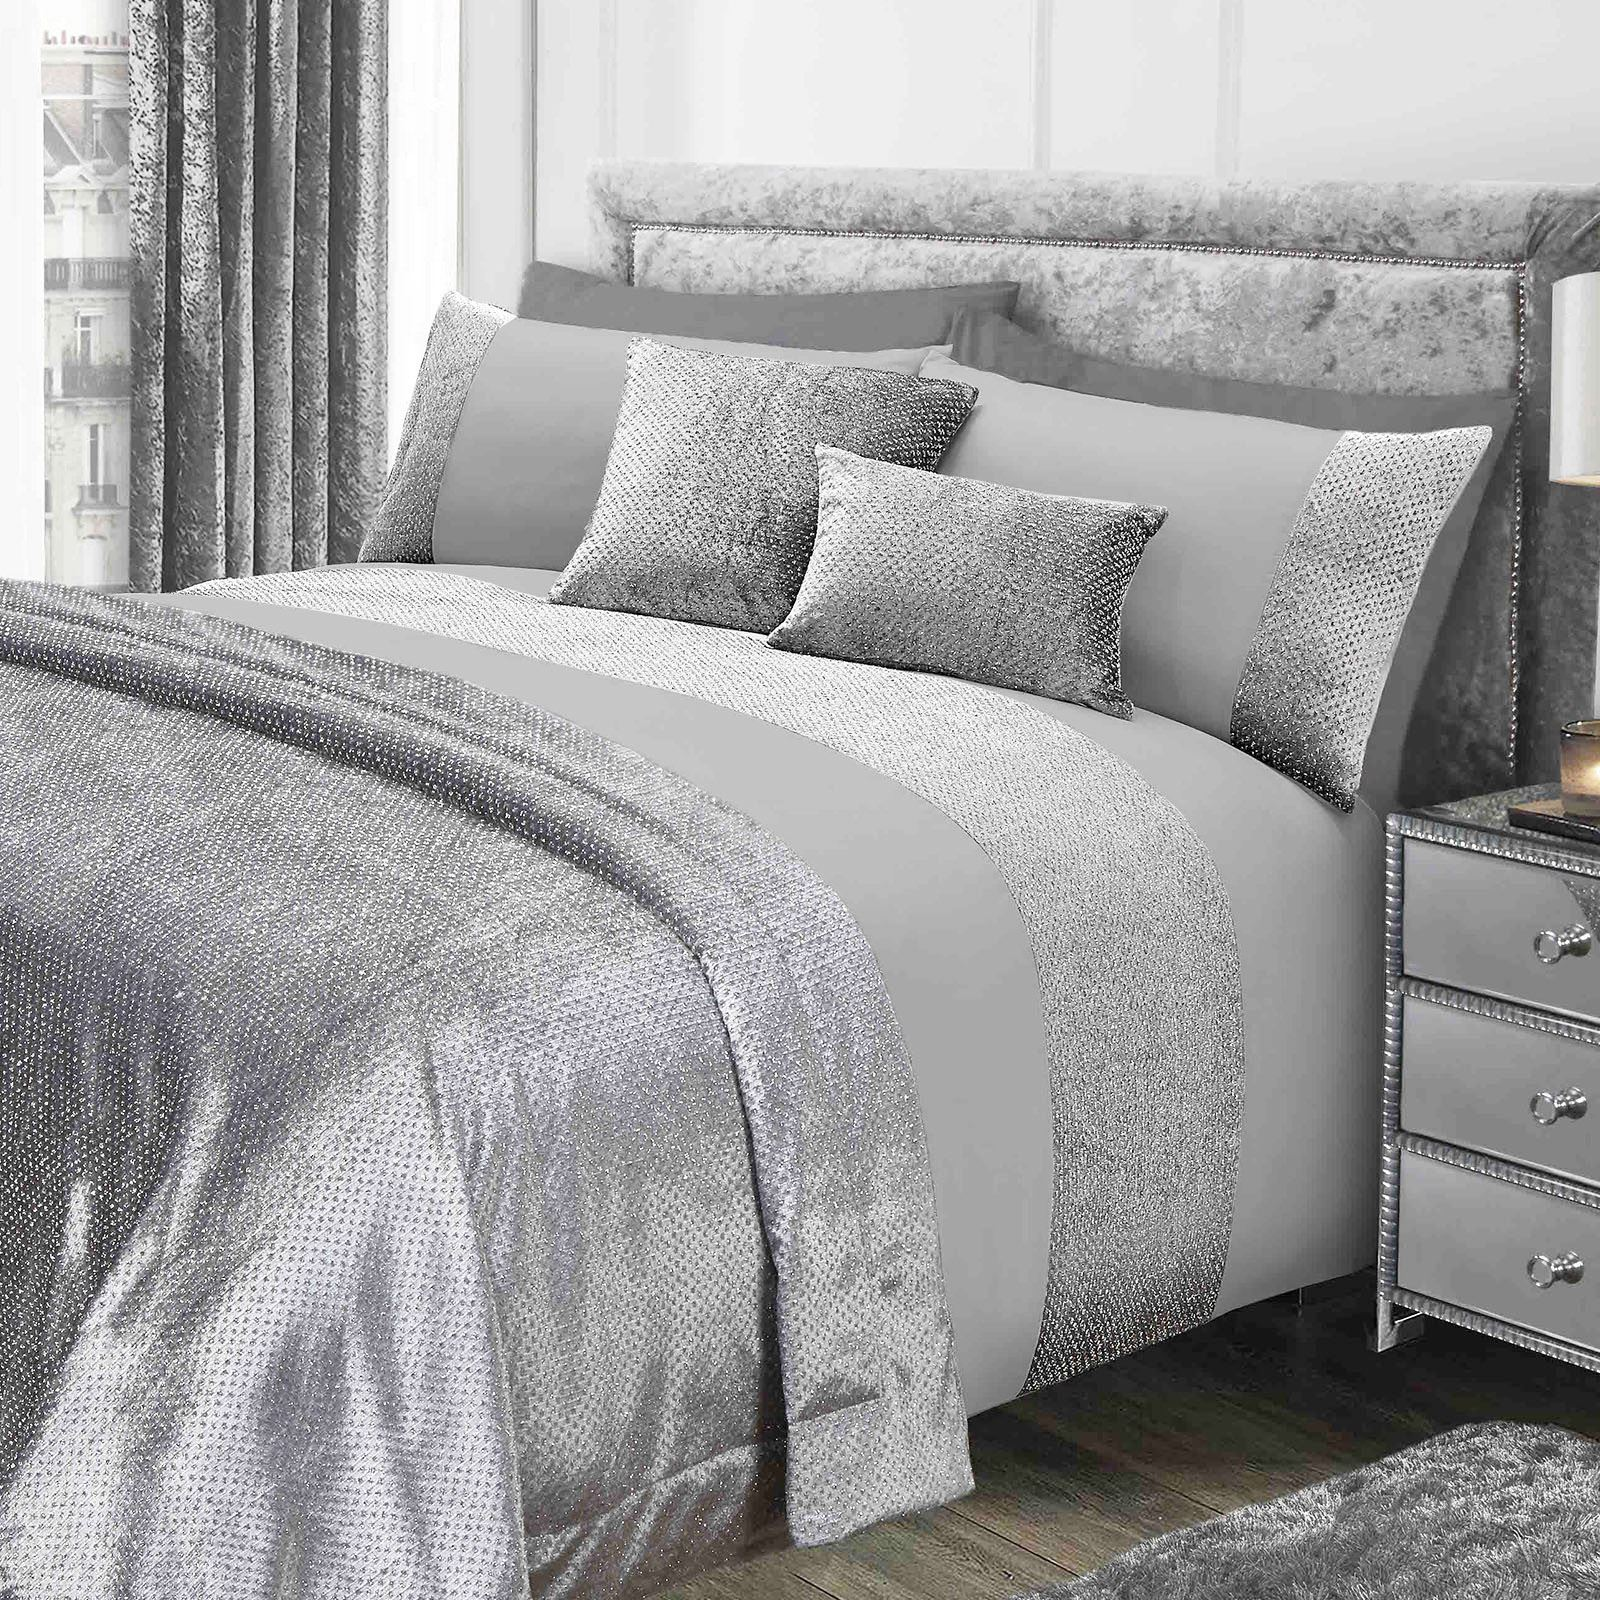 Sienna-Glitter-Duvet-Cover-with-Pillow-Case-Sparkle-Velvet-Bedding-Set-Grey-Pink thumbnail 12